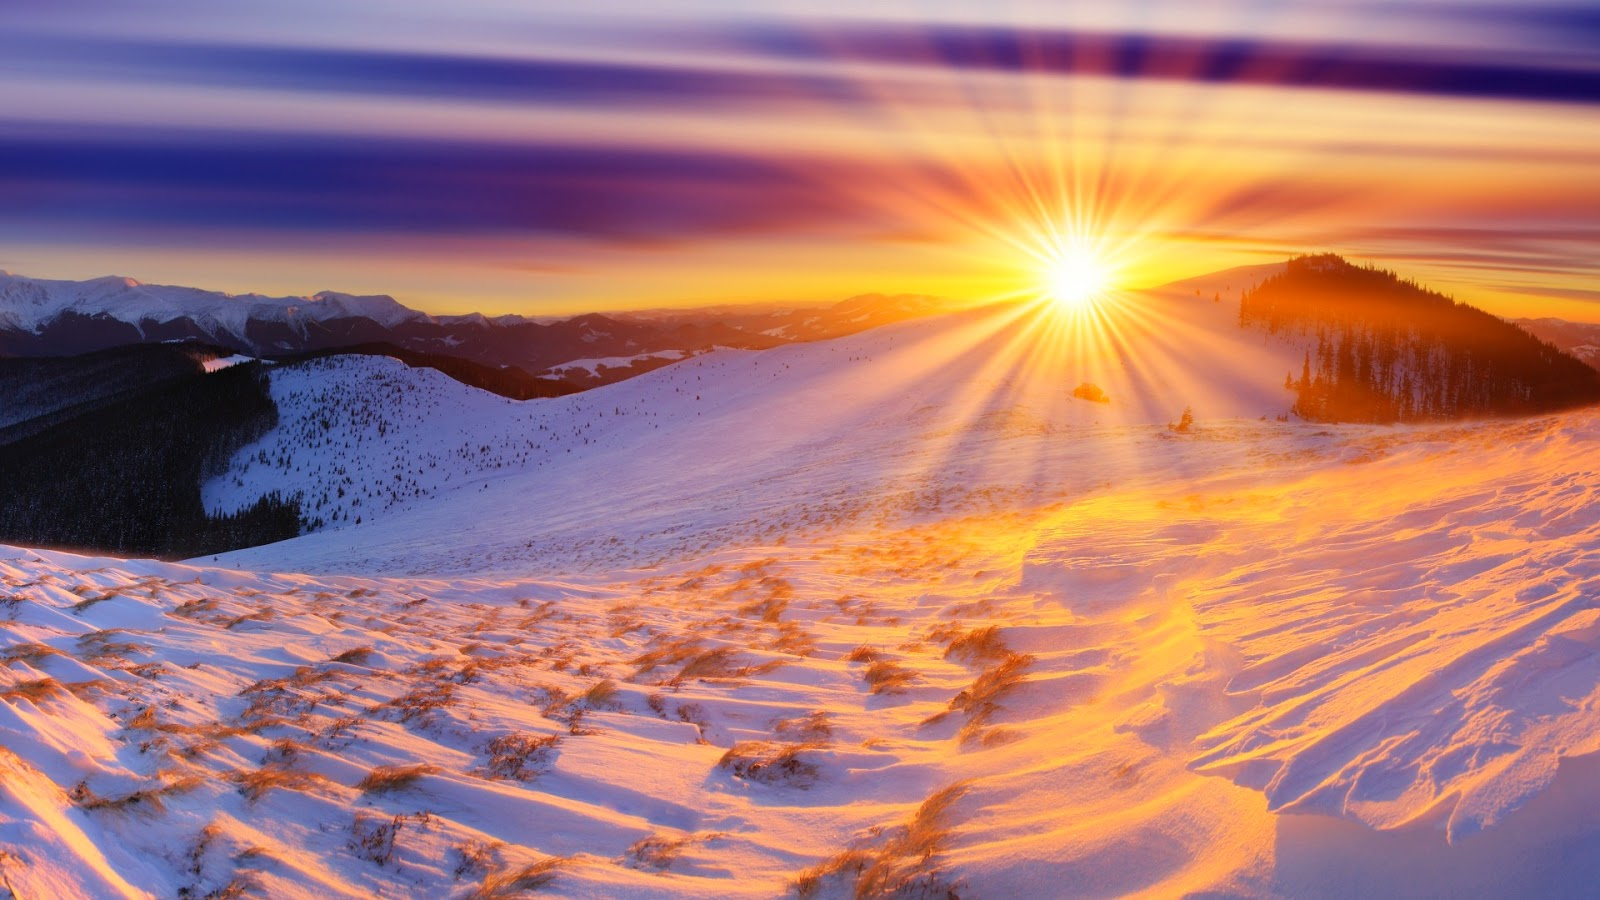 White Mountain Sunrise Snow Beautiful Nature Images And Wallpapers